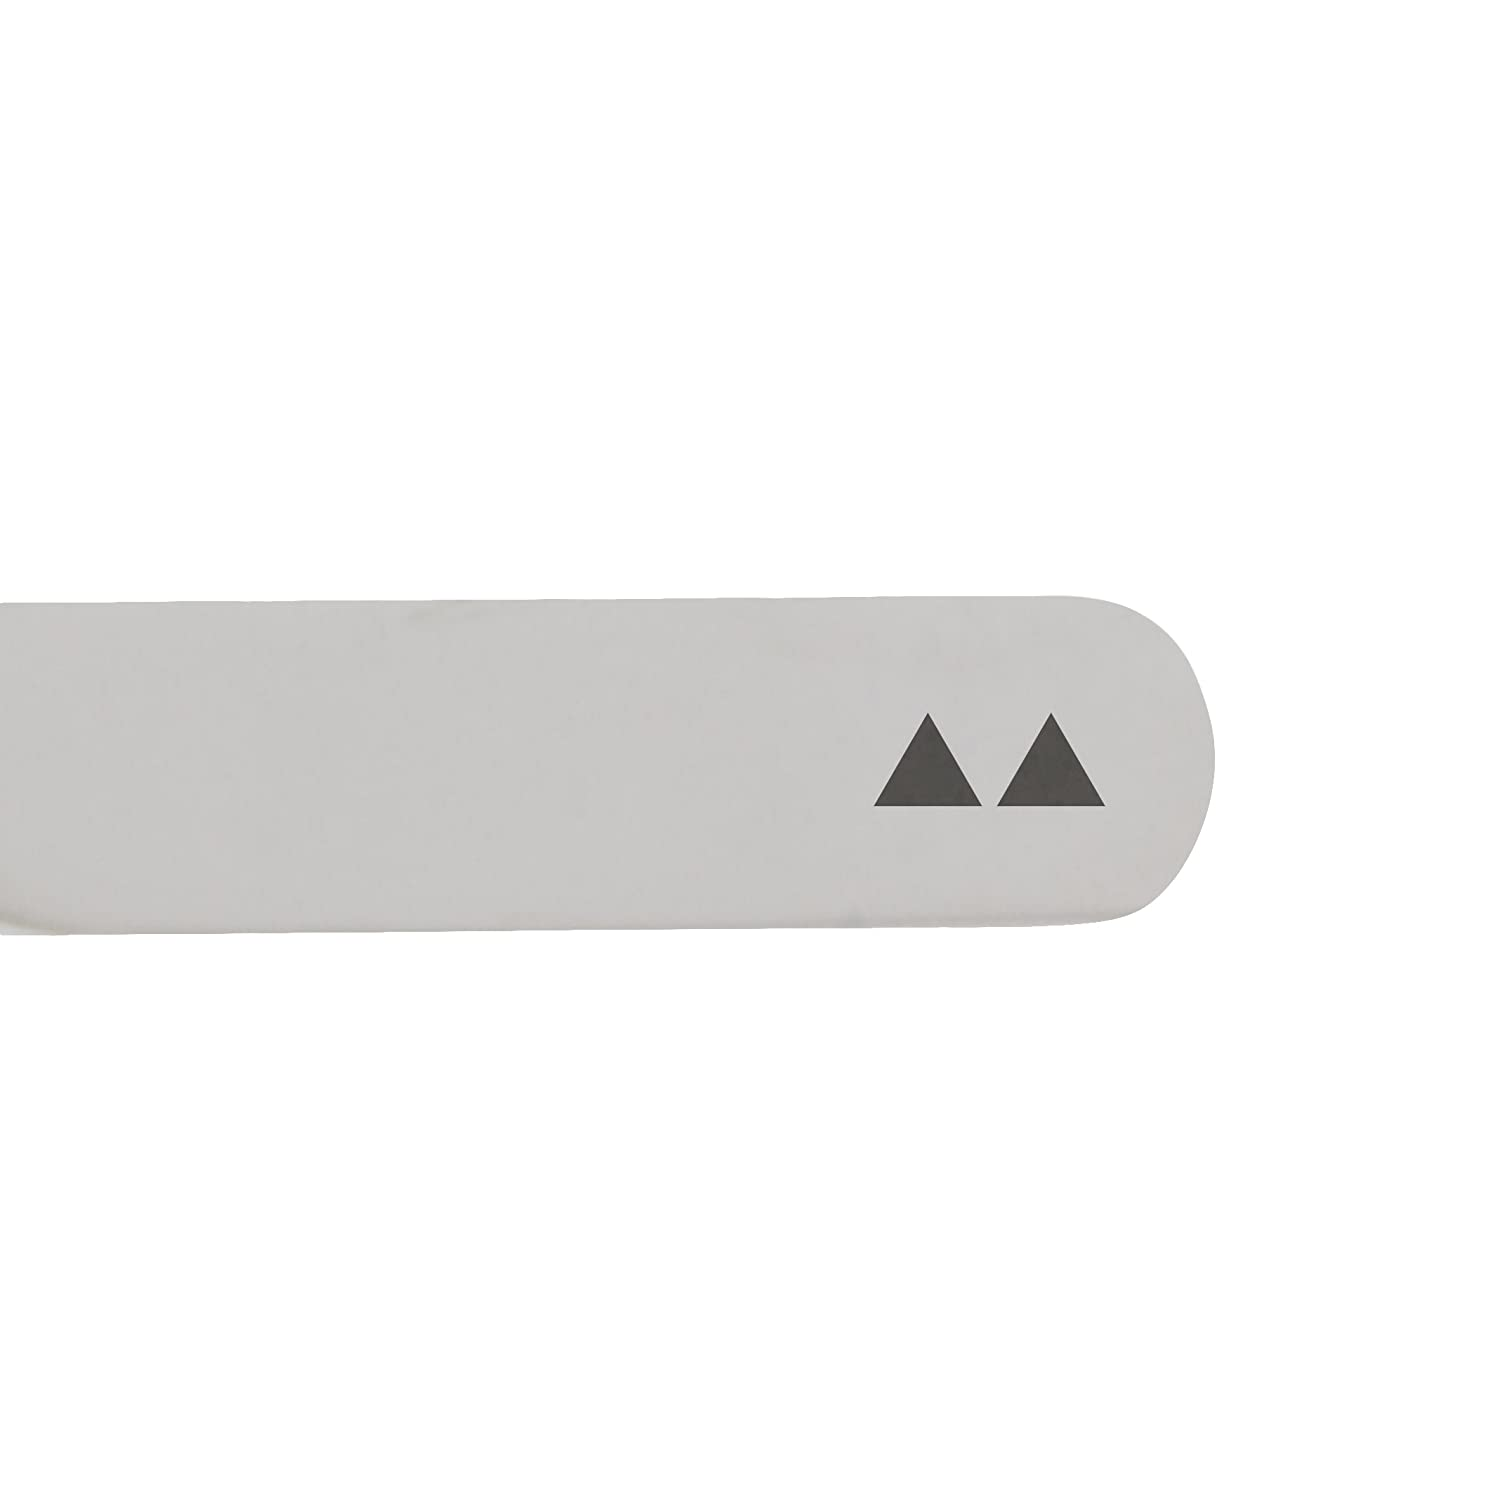 MODERN GOODS SHOP Stainless Steel Collar Stays With Laser Engraved Twin Peaks Design Made In USA 2.5 Inch Metal Collar Stiffeners